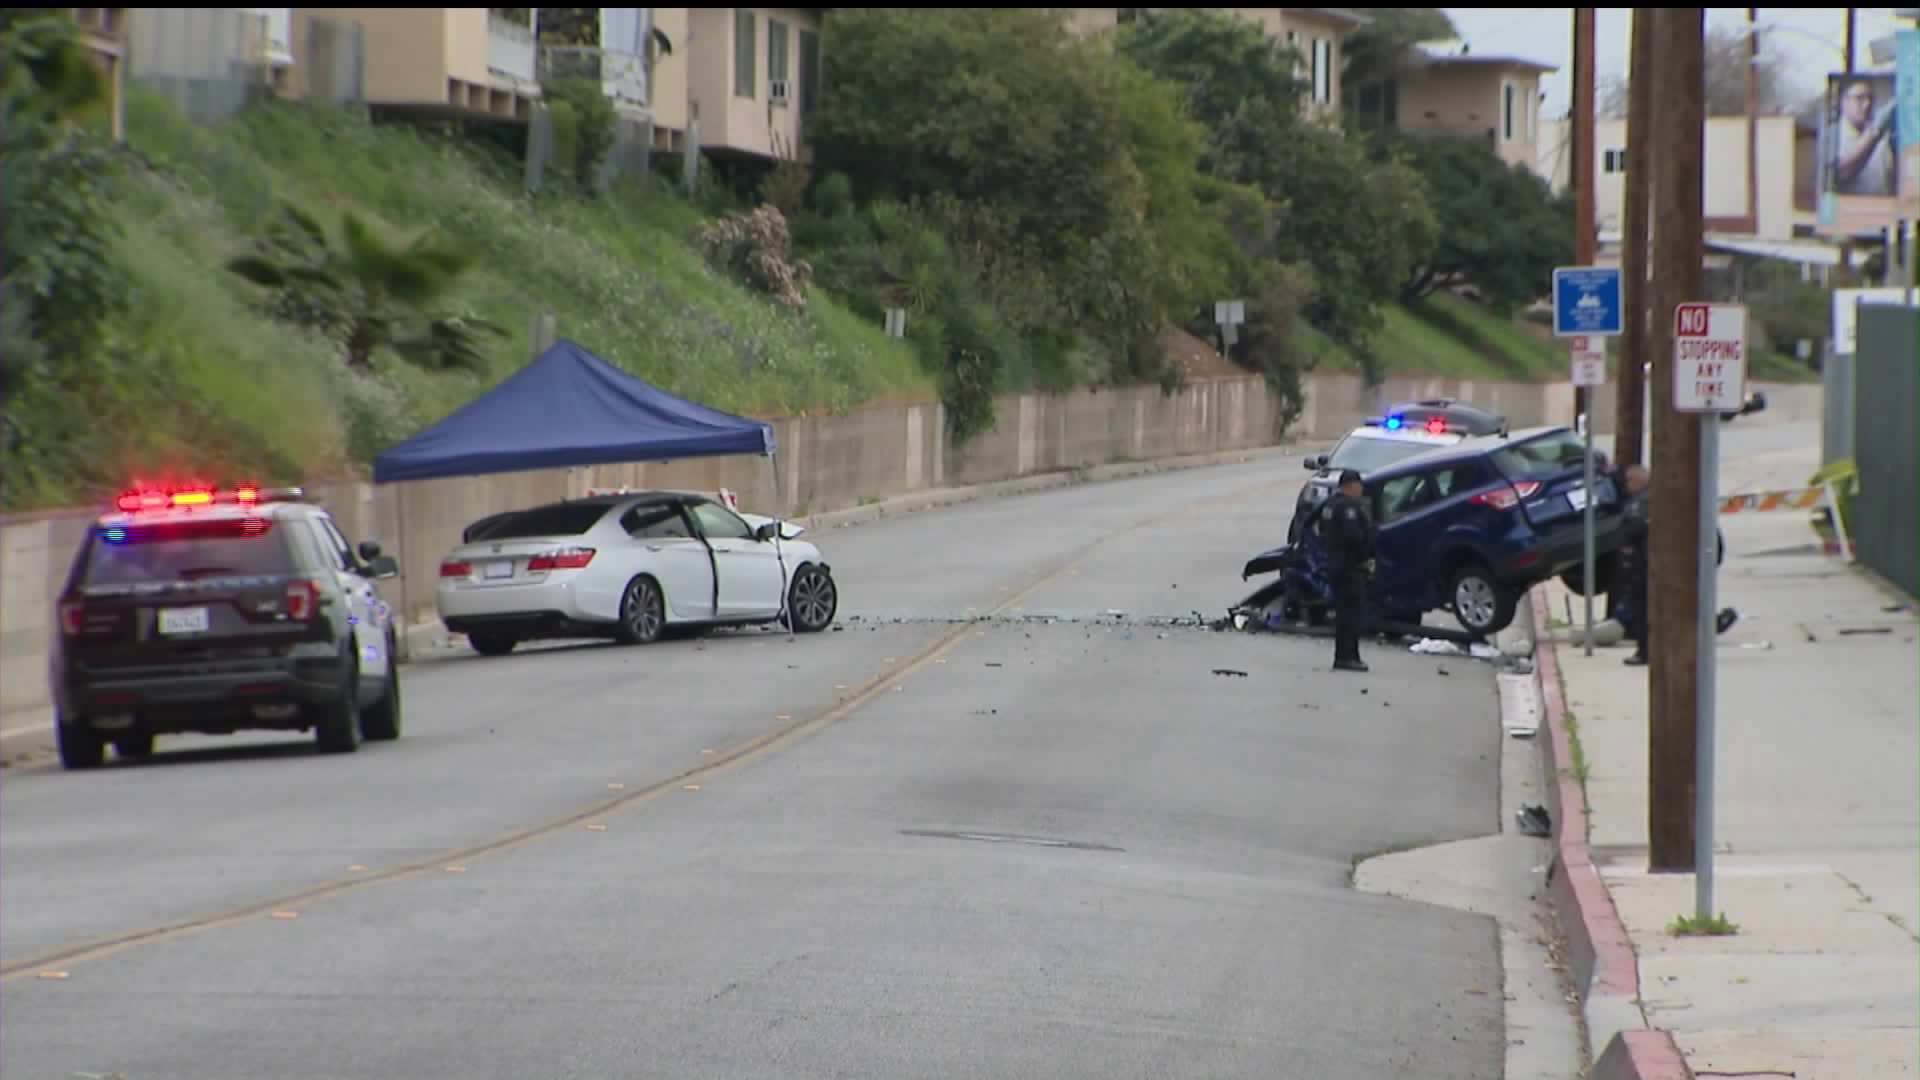 A two-vehicle crash in Monterey Park on Feb. 9, 2020, left one person dead and another injured, officials said. (Credit: KTLA)